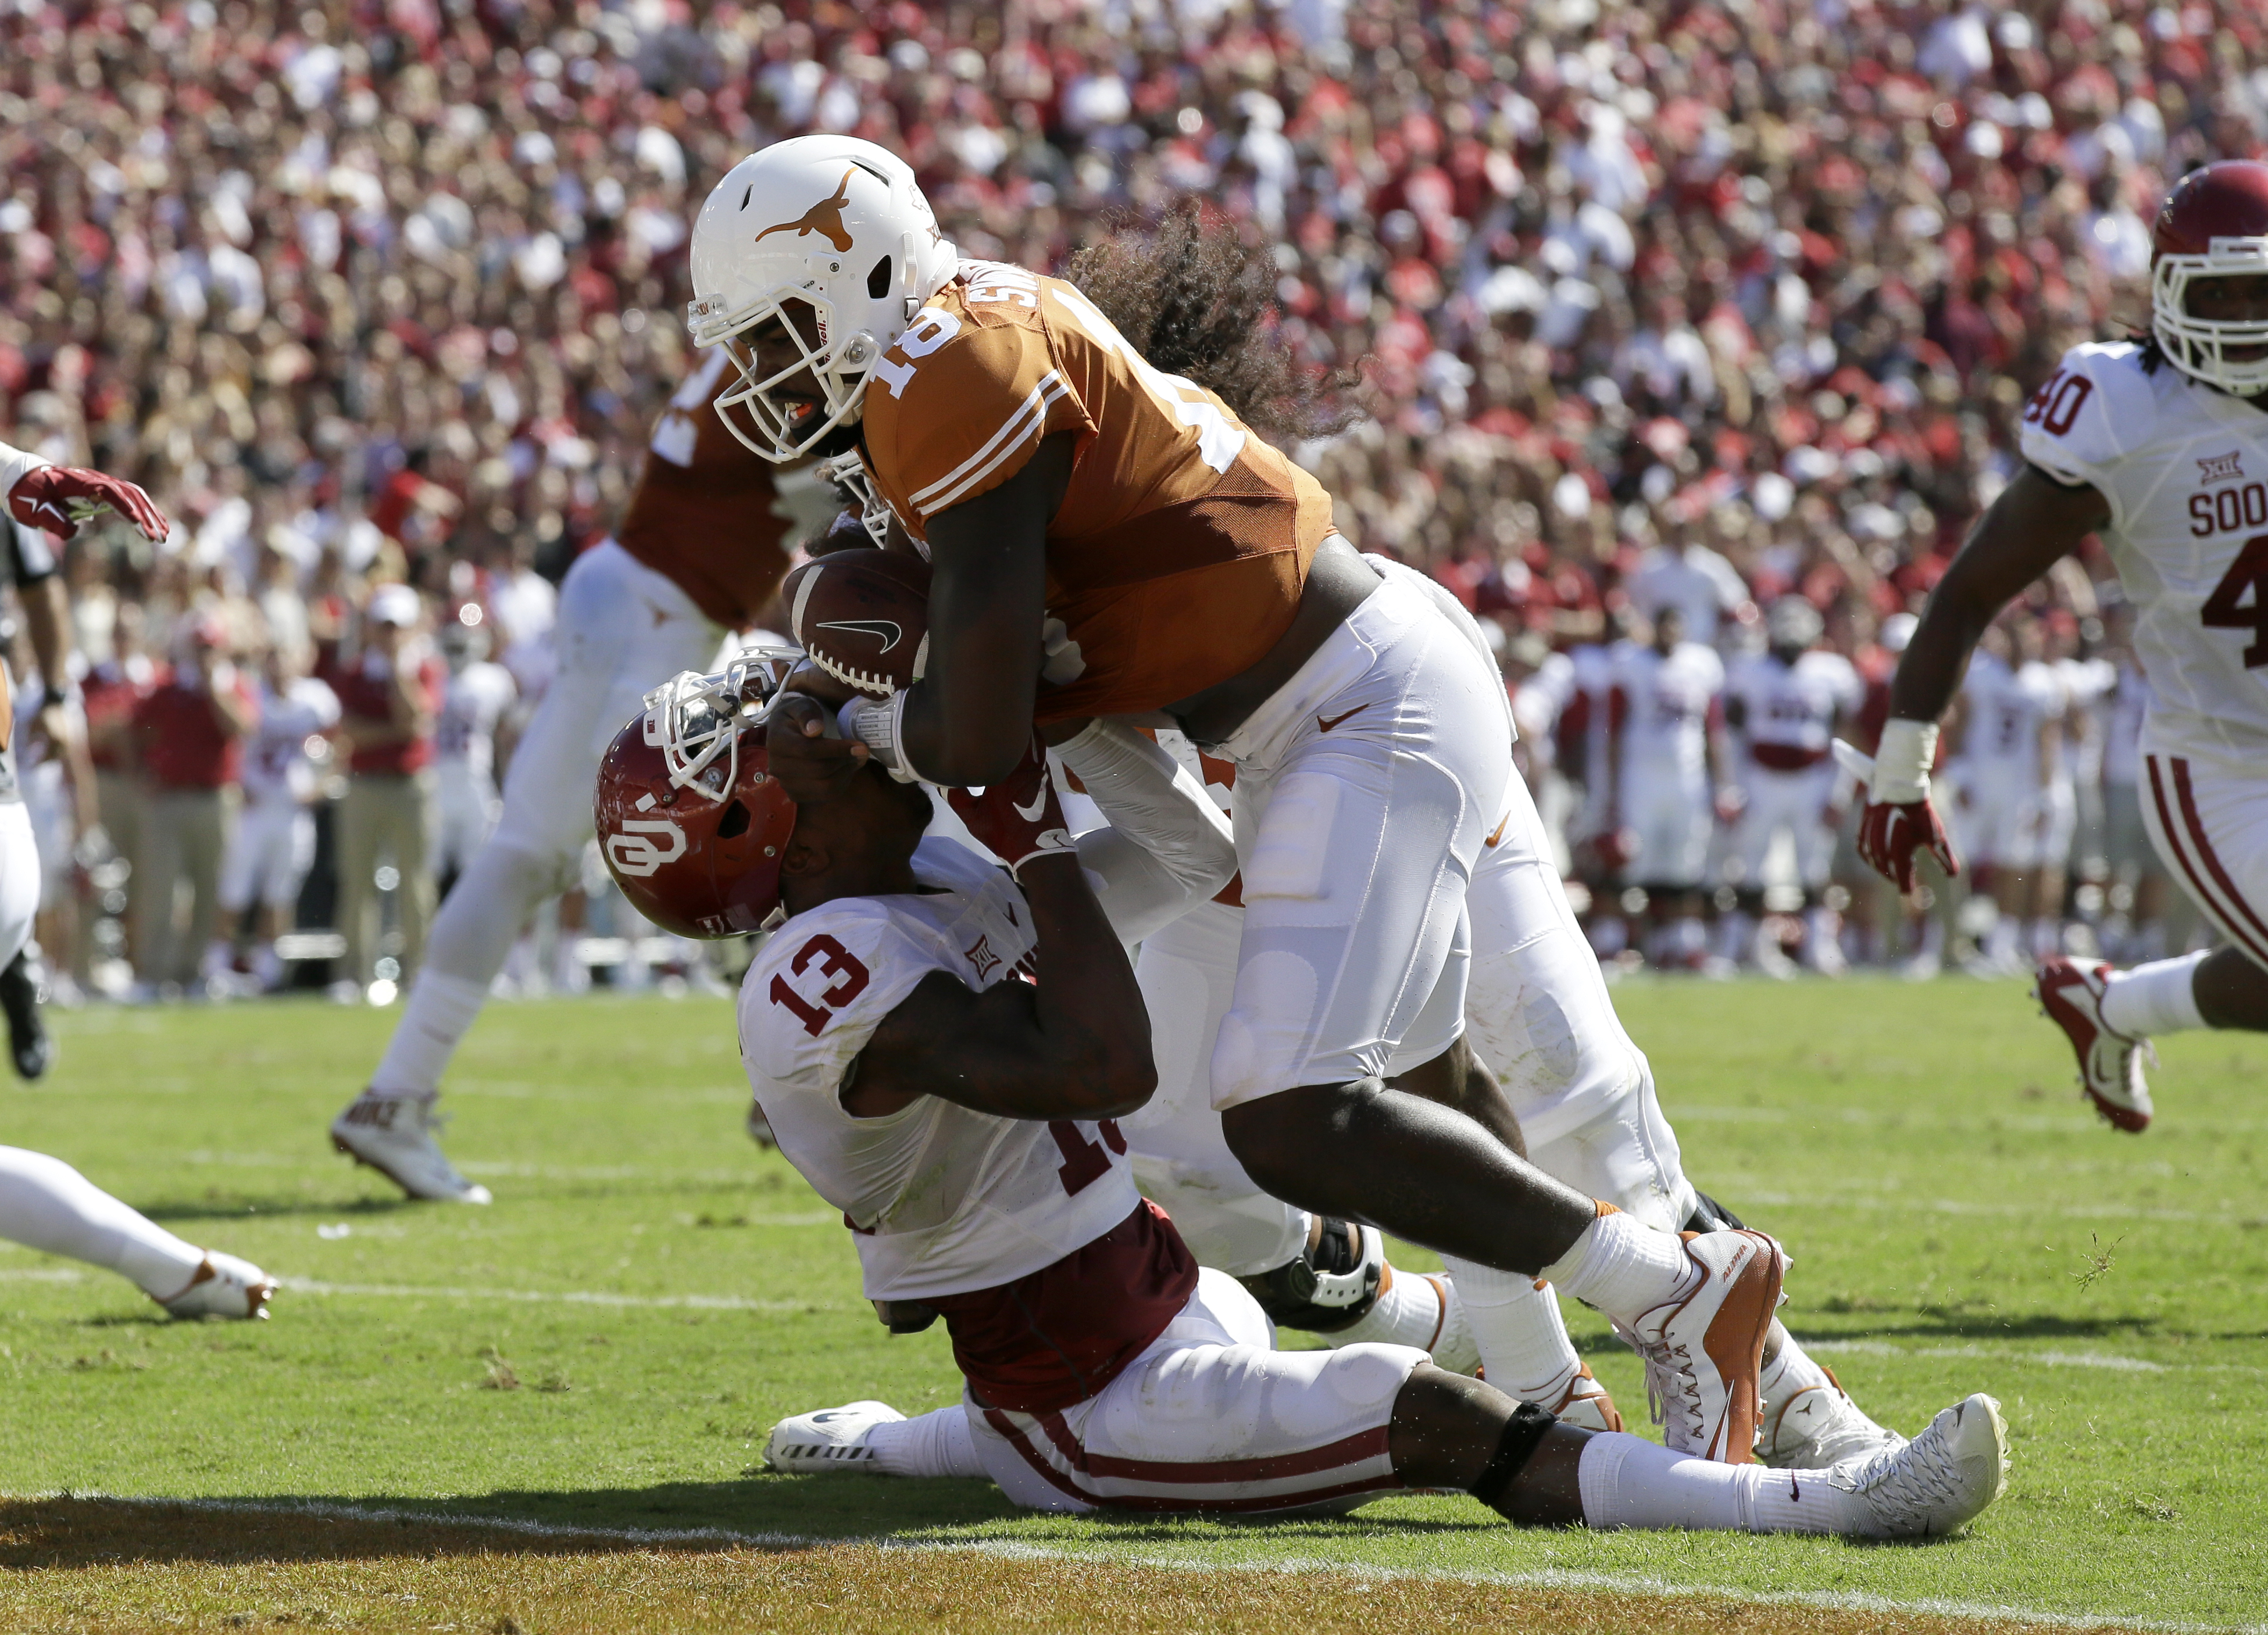 Texas quarterback Tyrone Swoopes struggles to hold onto the ball as he crosses the goal line for a touchdown over Oklahoma safety Ahmad Thomas in the first half of an NCAA college football game Saturday, Oct. 10, 2015, in Dallas. Swoopes was credited with